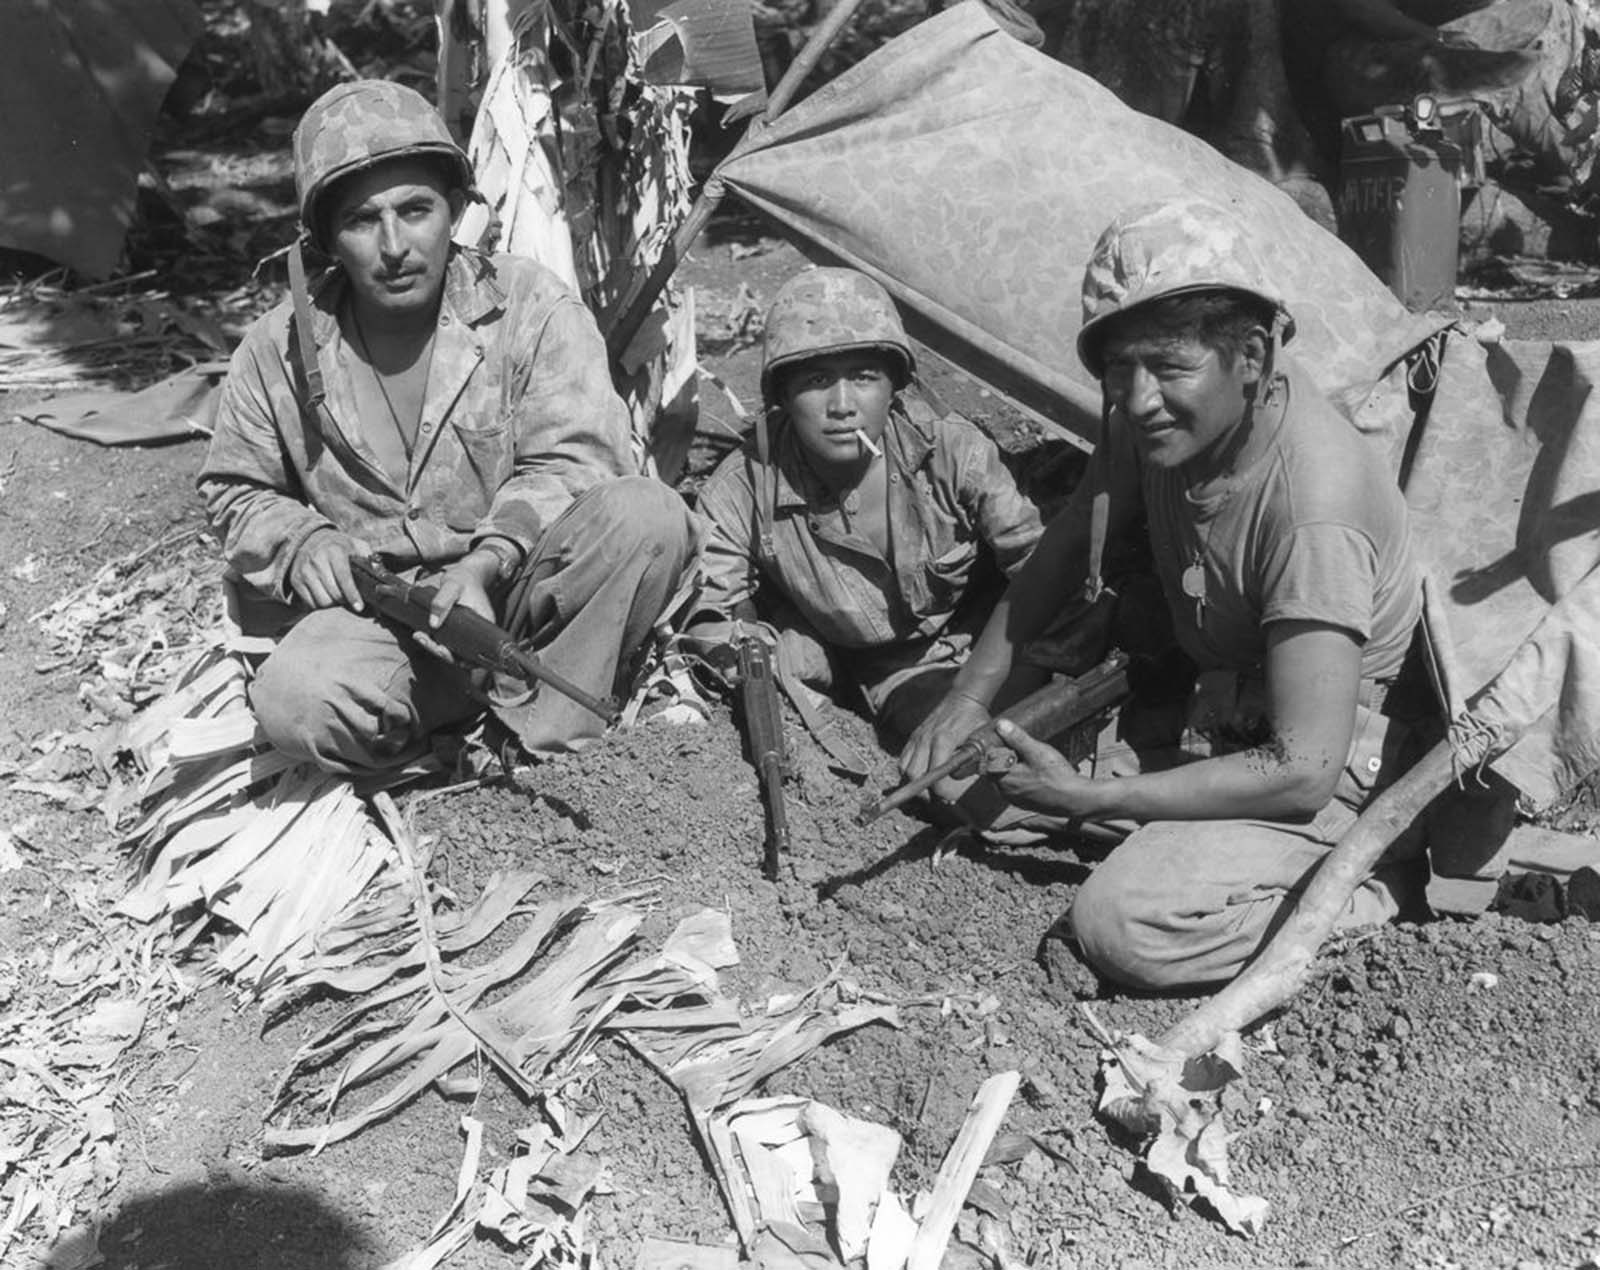 Corporal Oscar Ithma, Private First Class Jack Nez, and Private First Class Carl Gorman on Saipan.